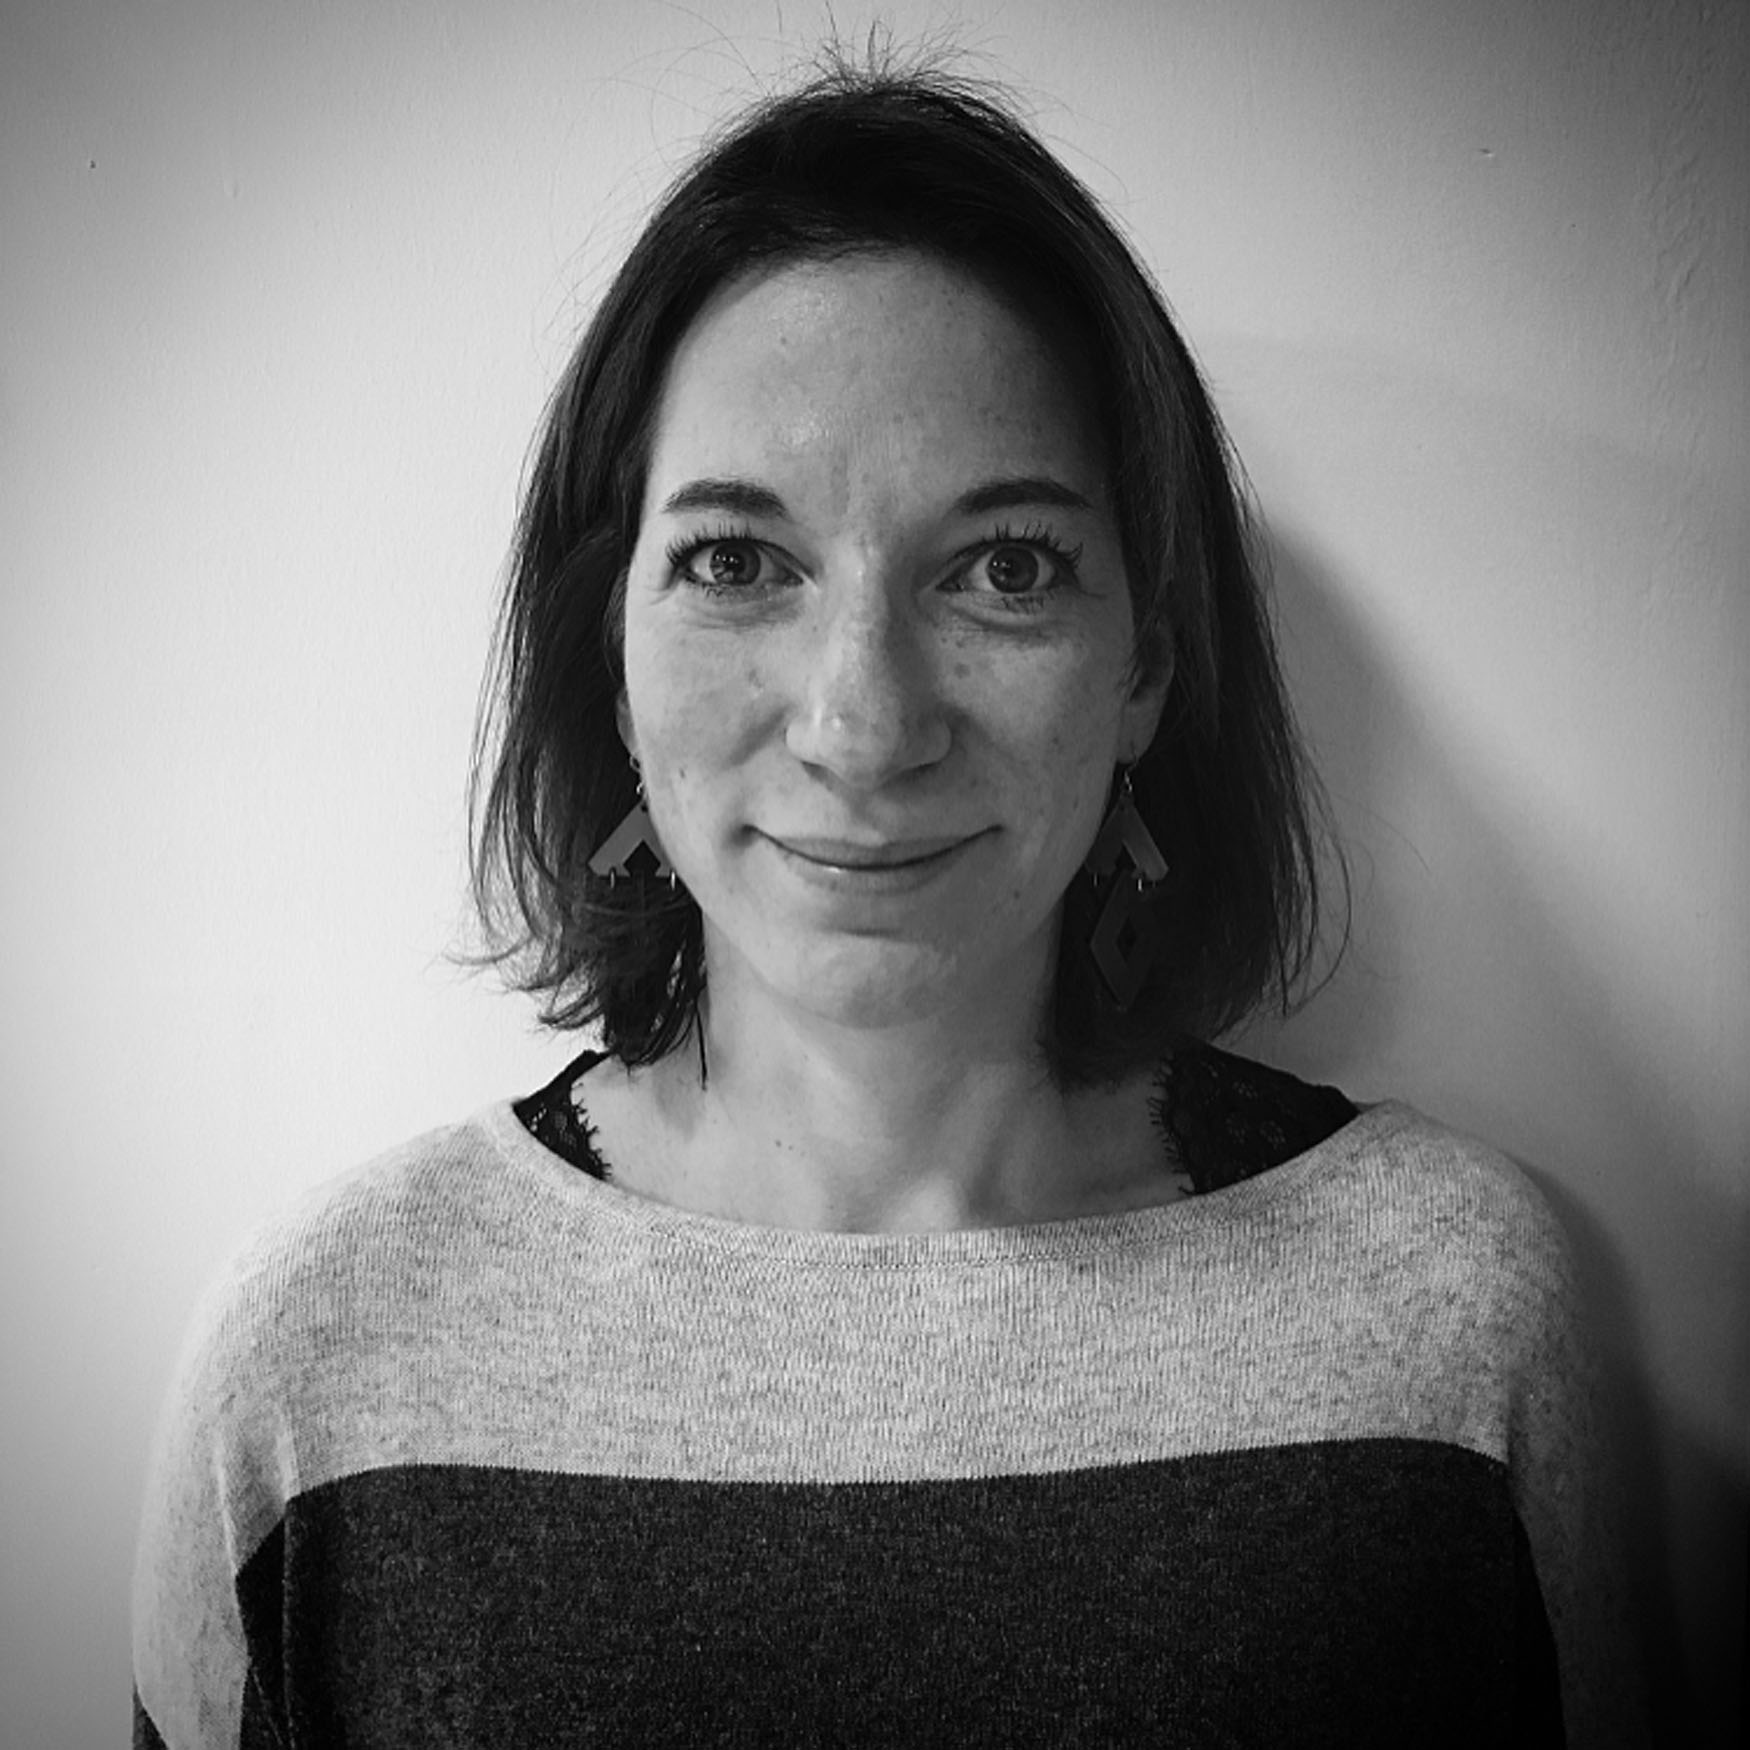 Emilie Belloir - Product Manager profile picture